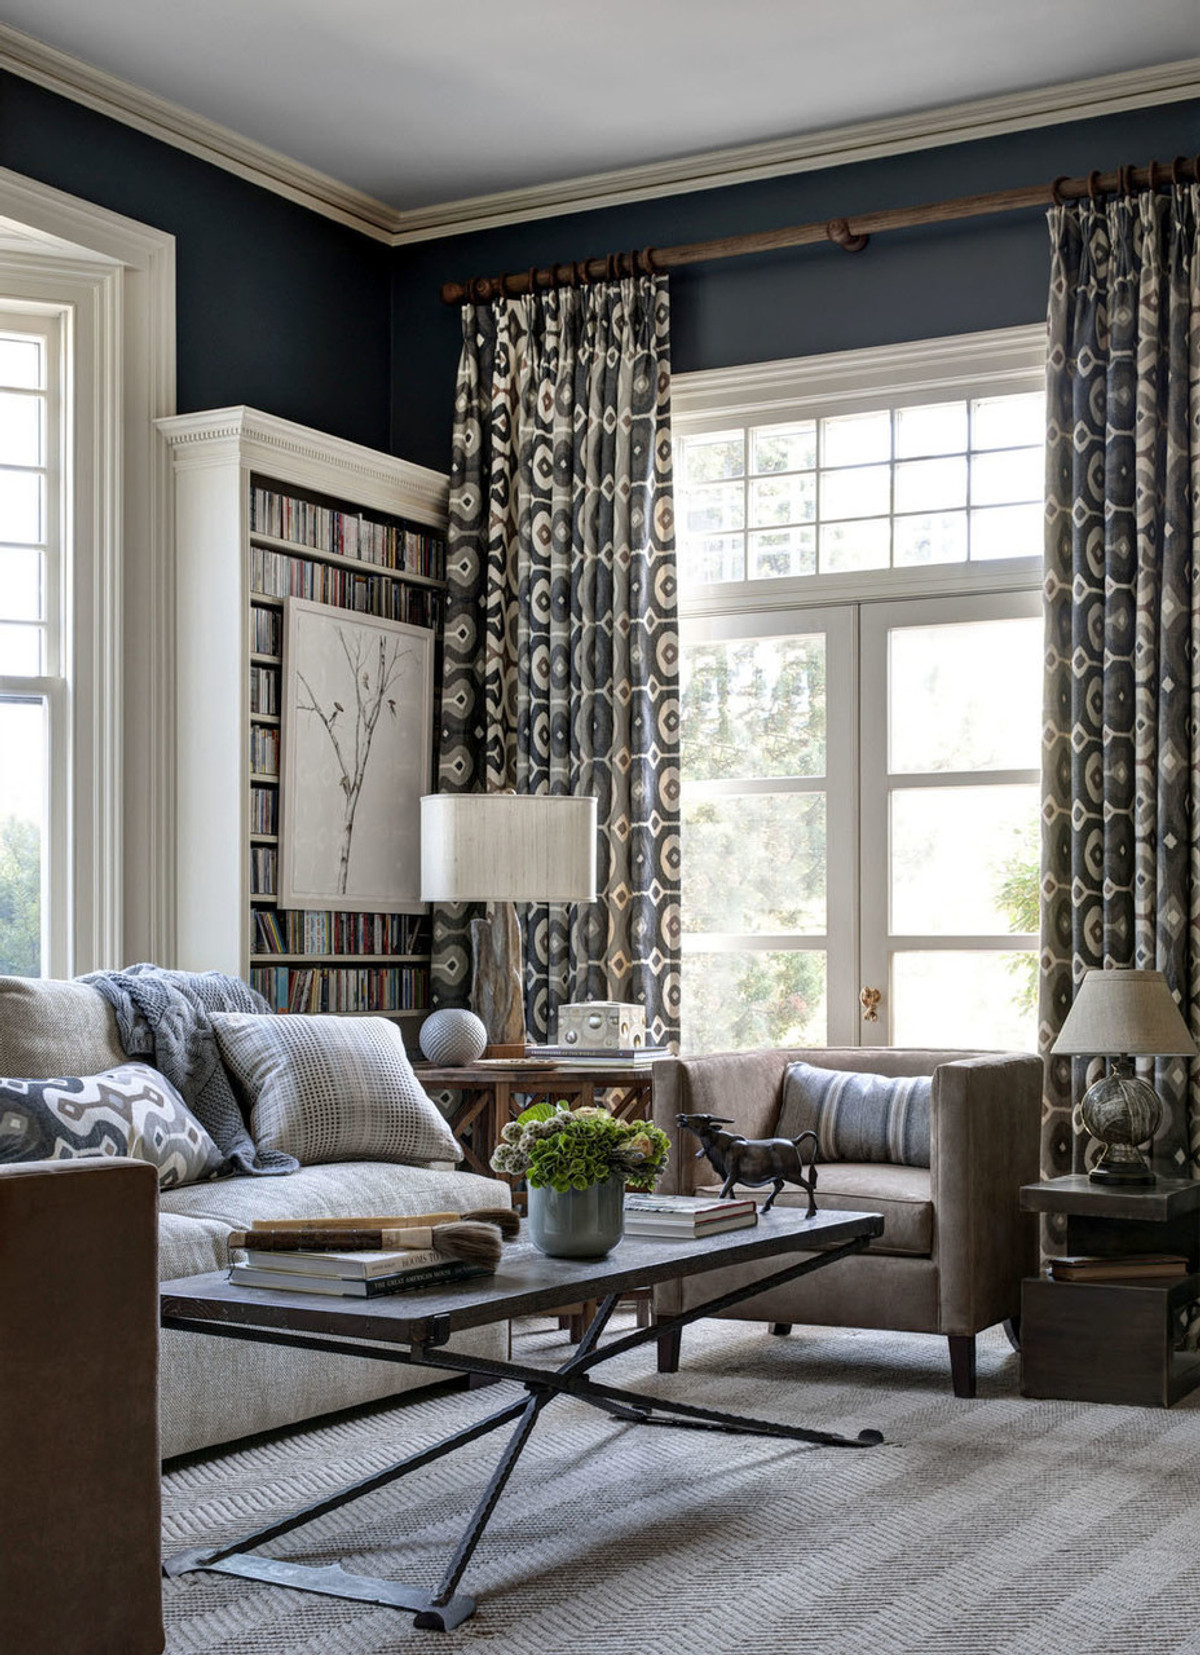 Living Room Drapes on Large French Doors